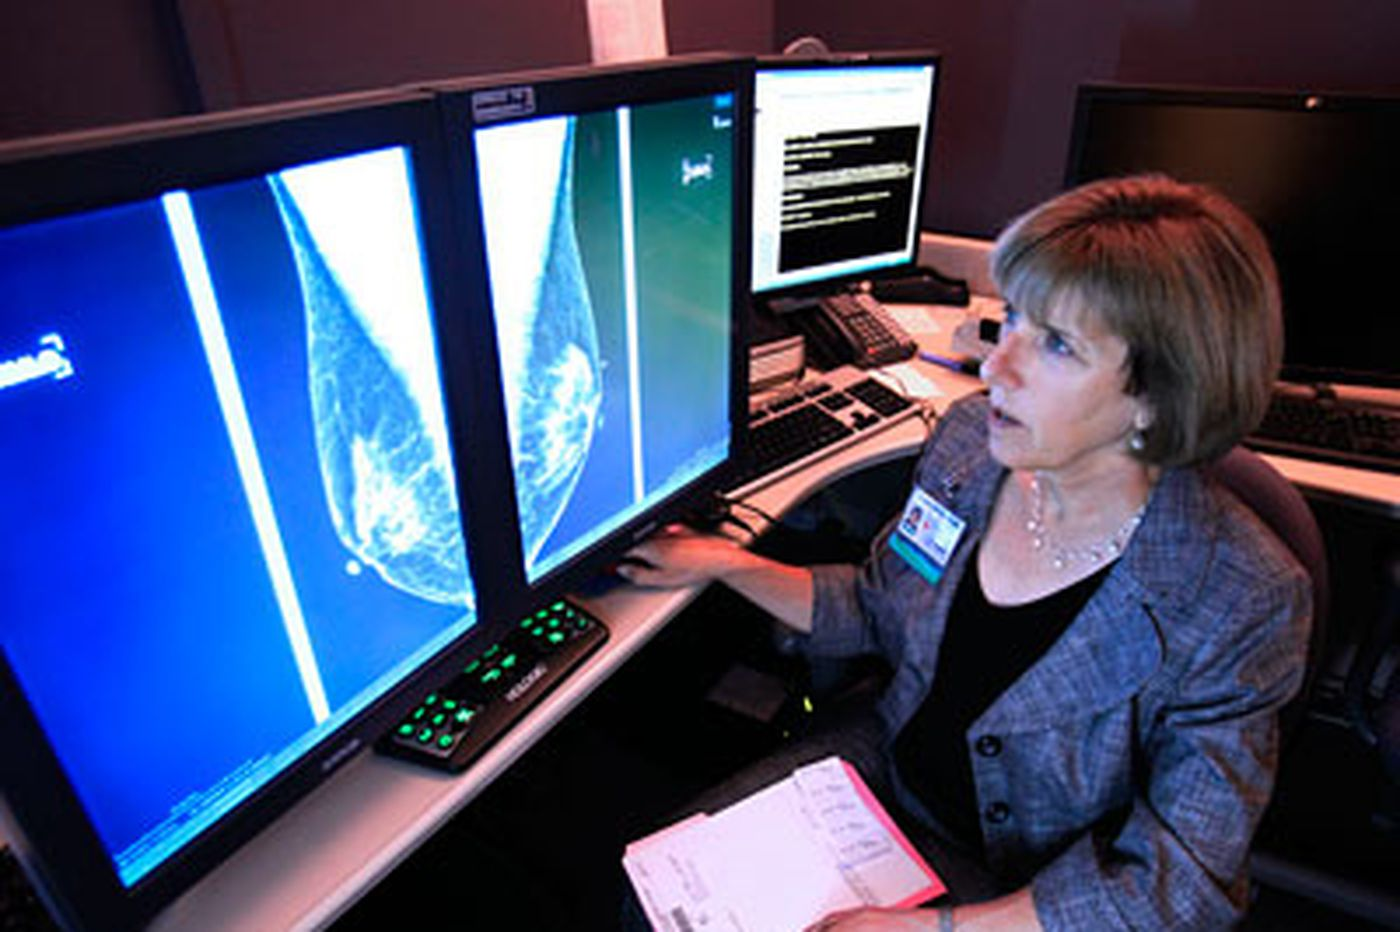 Hope seen in 2 breast cancer drugs